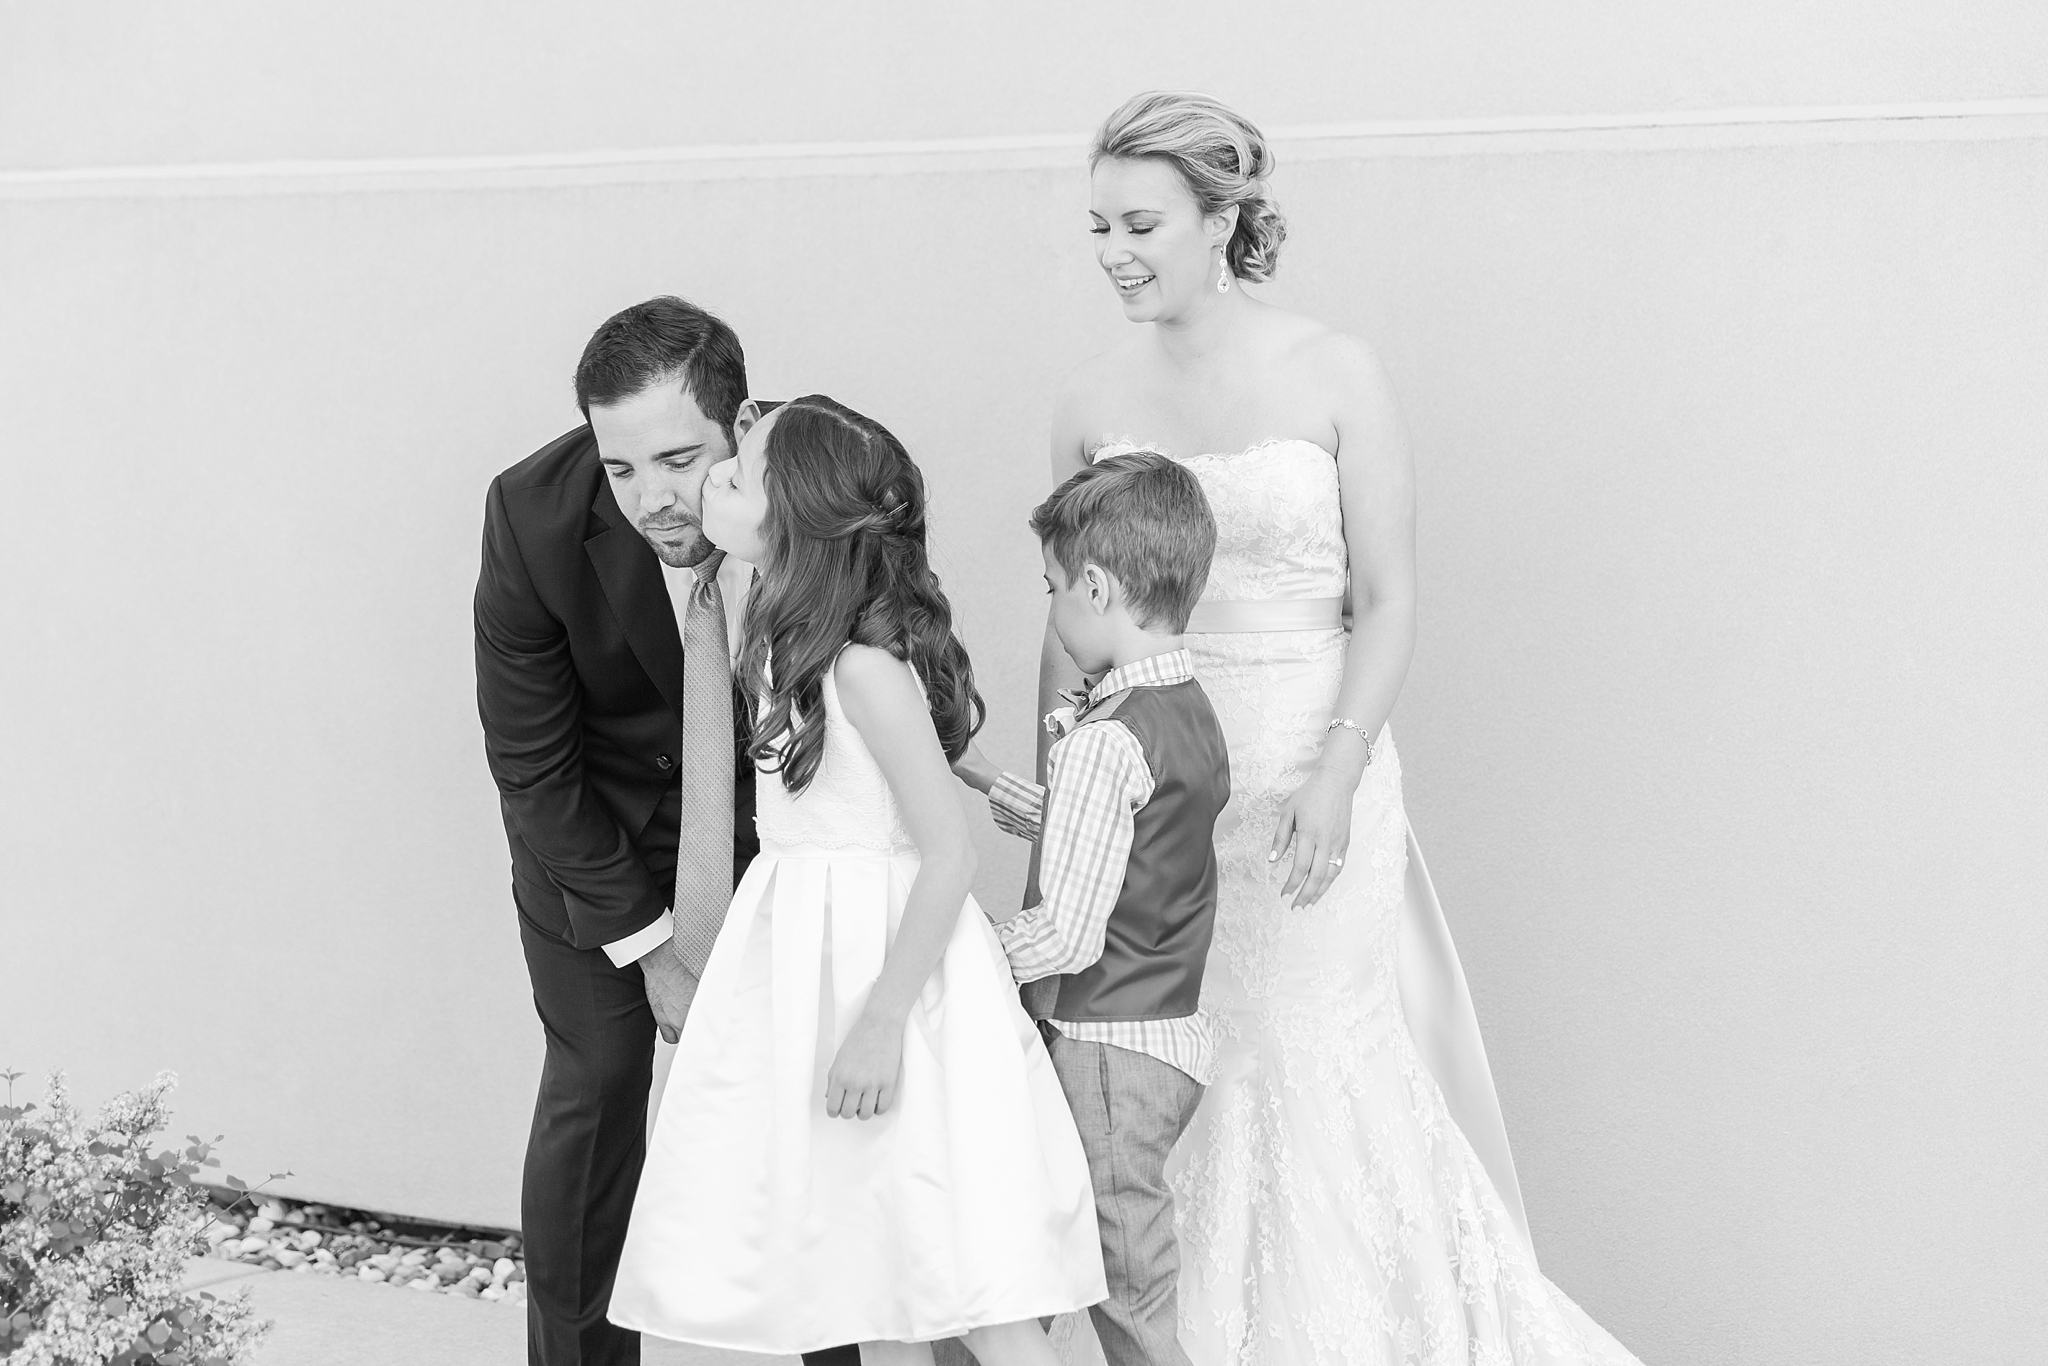 fun-candid-laid-back-wedding-photos-at-wellers-carriage-house-in-saline-michigan-and-at-the-eagle-crest-golf-resort-by-courtney-carolyn-photography_0023.jpg